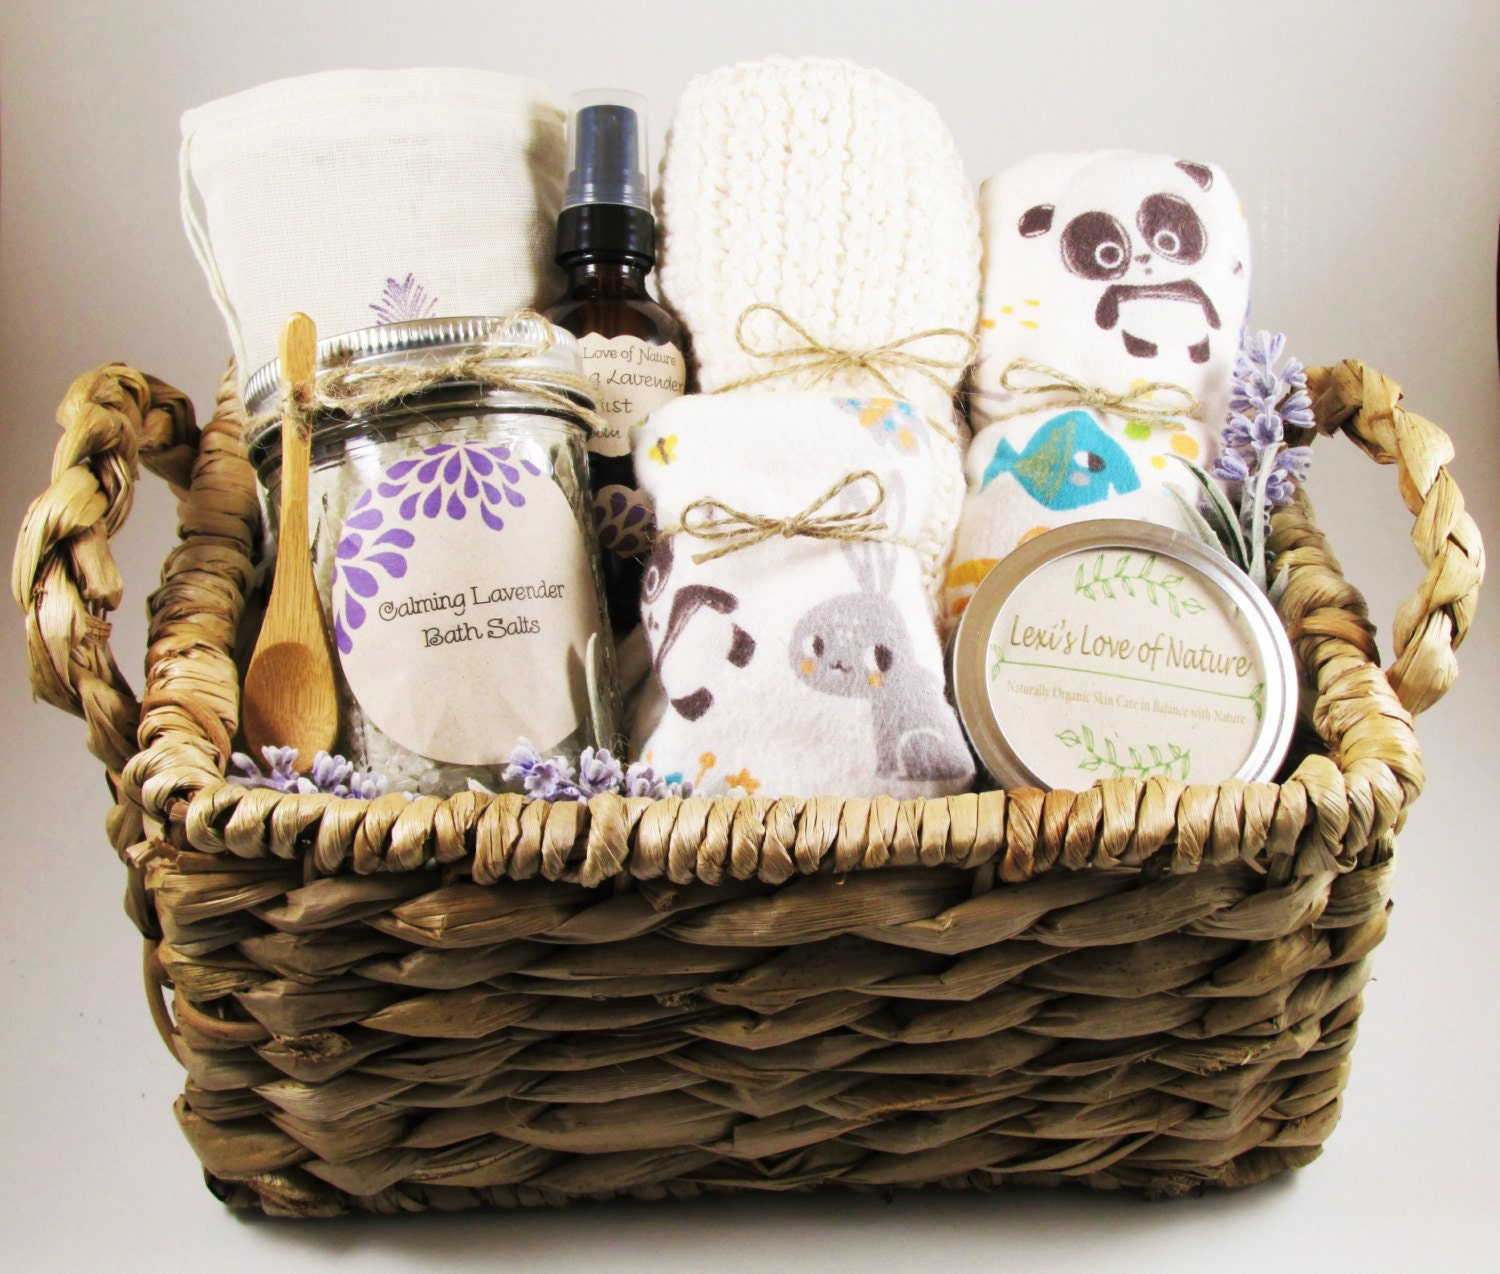 Gift for new mom mom and baby gift new mom gift basket zoom negle Choice Image